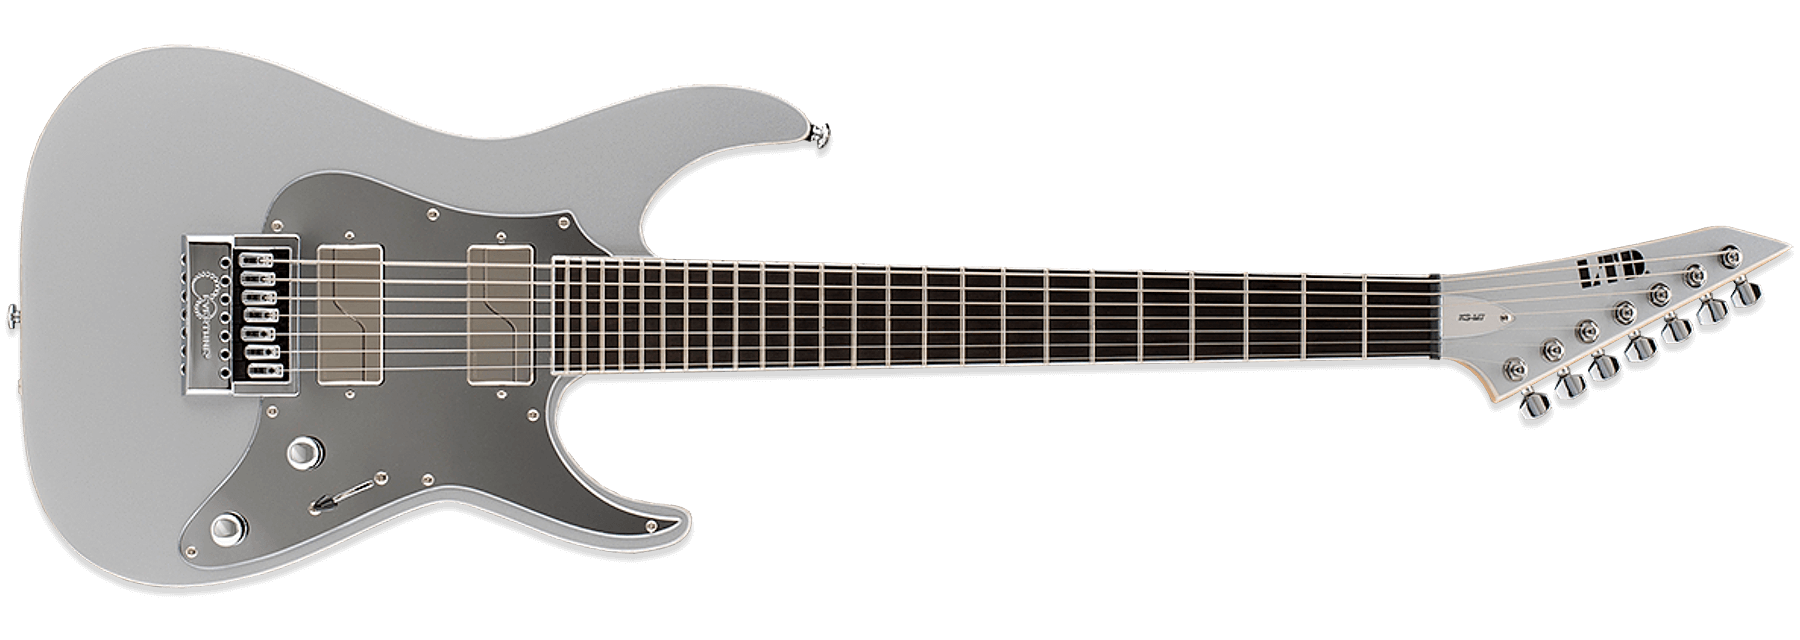 ESP LTD Ken Susi KS-M7 Evertune